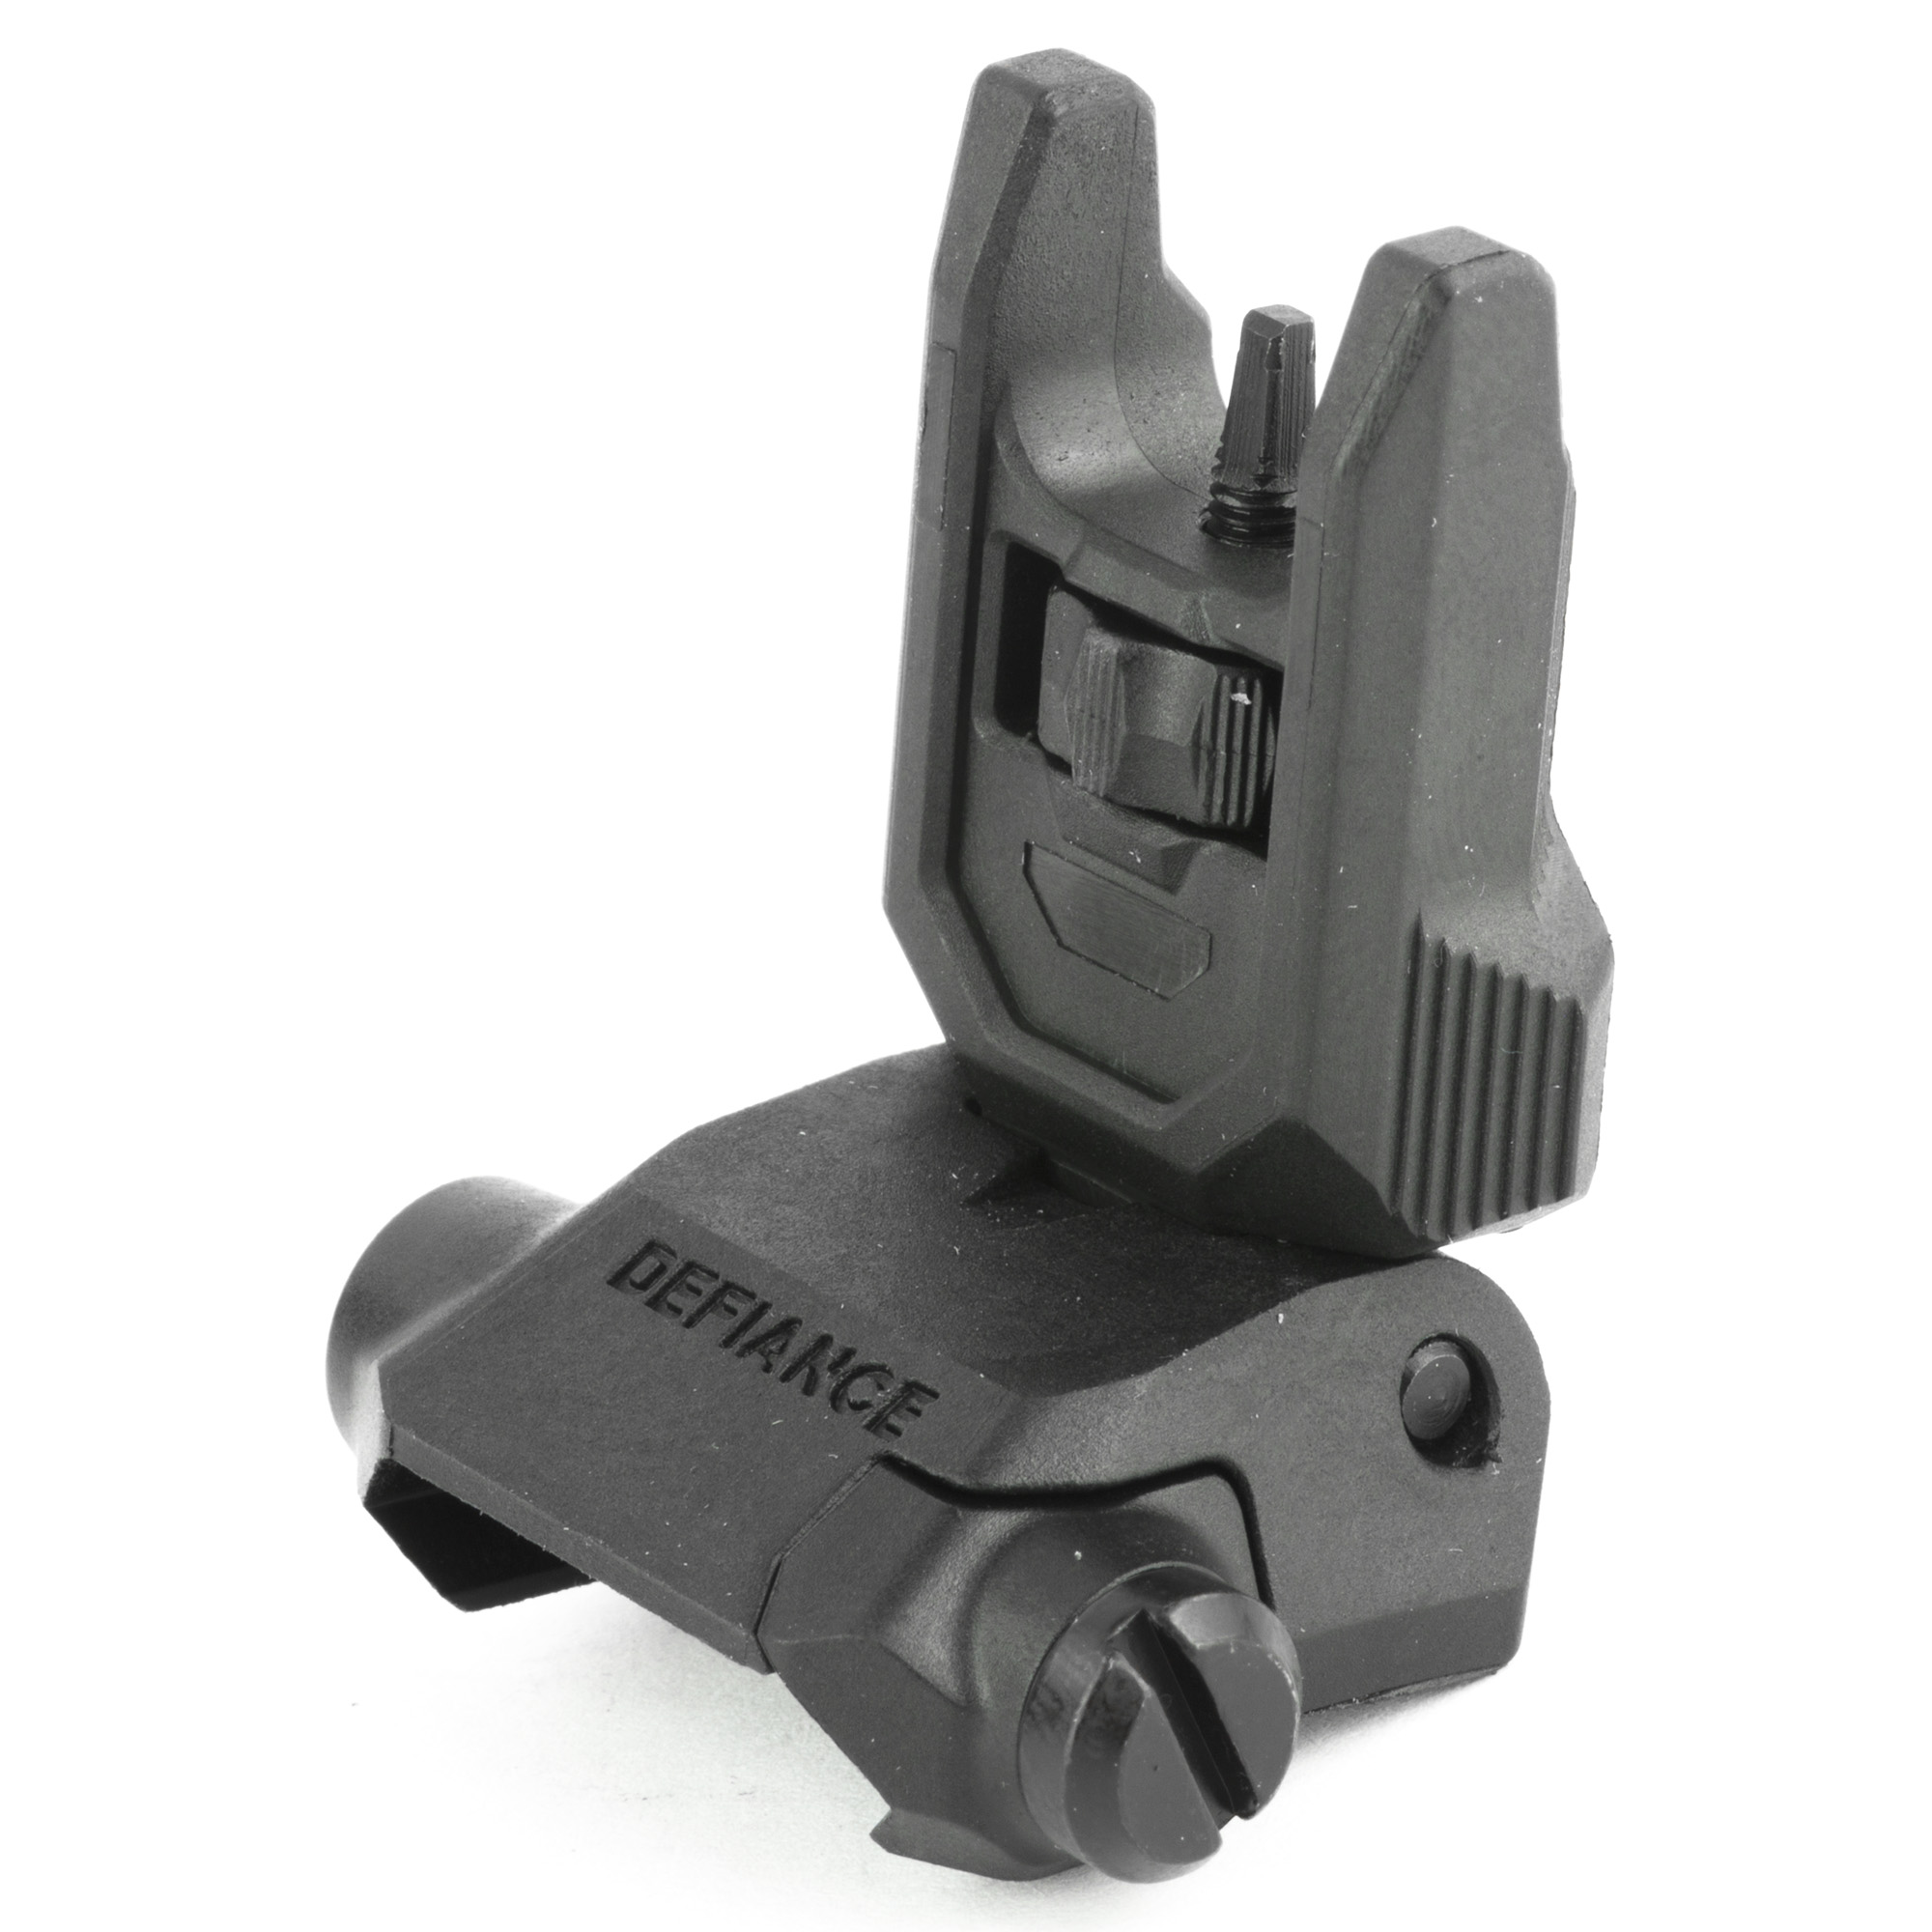 """Kriss USA Low Profile flip up front sight is the same OEM front flip sight that come standard with the Kriss Vector and DMK22 firearm platforms. The sight provides you with an extremely low profile front sight which will tuck completely out of the way when folded resting at a slim .50"""" when folded down in the stowed position. This particular front sight has a wide range of elevation adjustment which will accommodate a large spectrum of firearms"""" height over bores conditions and calibers. A large textured adjustment knob makes elevation changes simple and easy especially if you are operating with a gloved hand."""